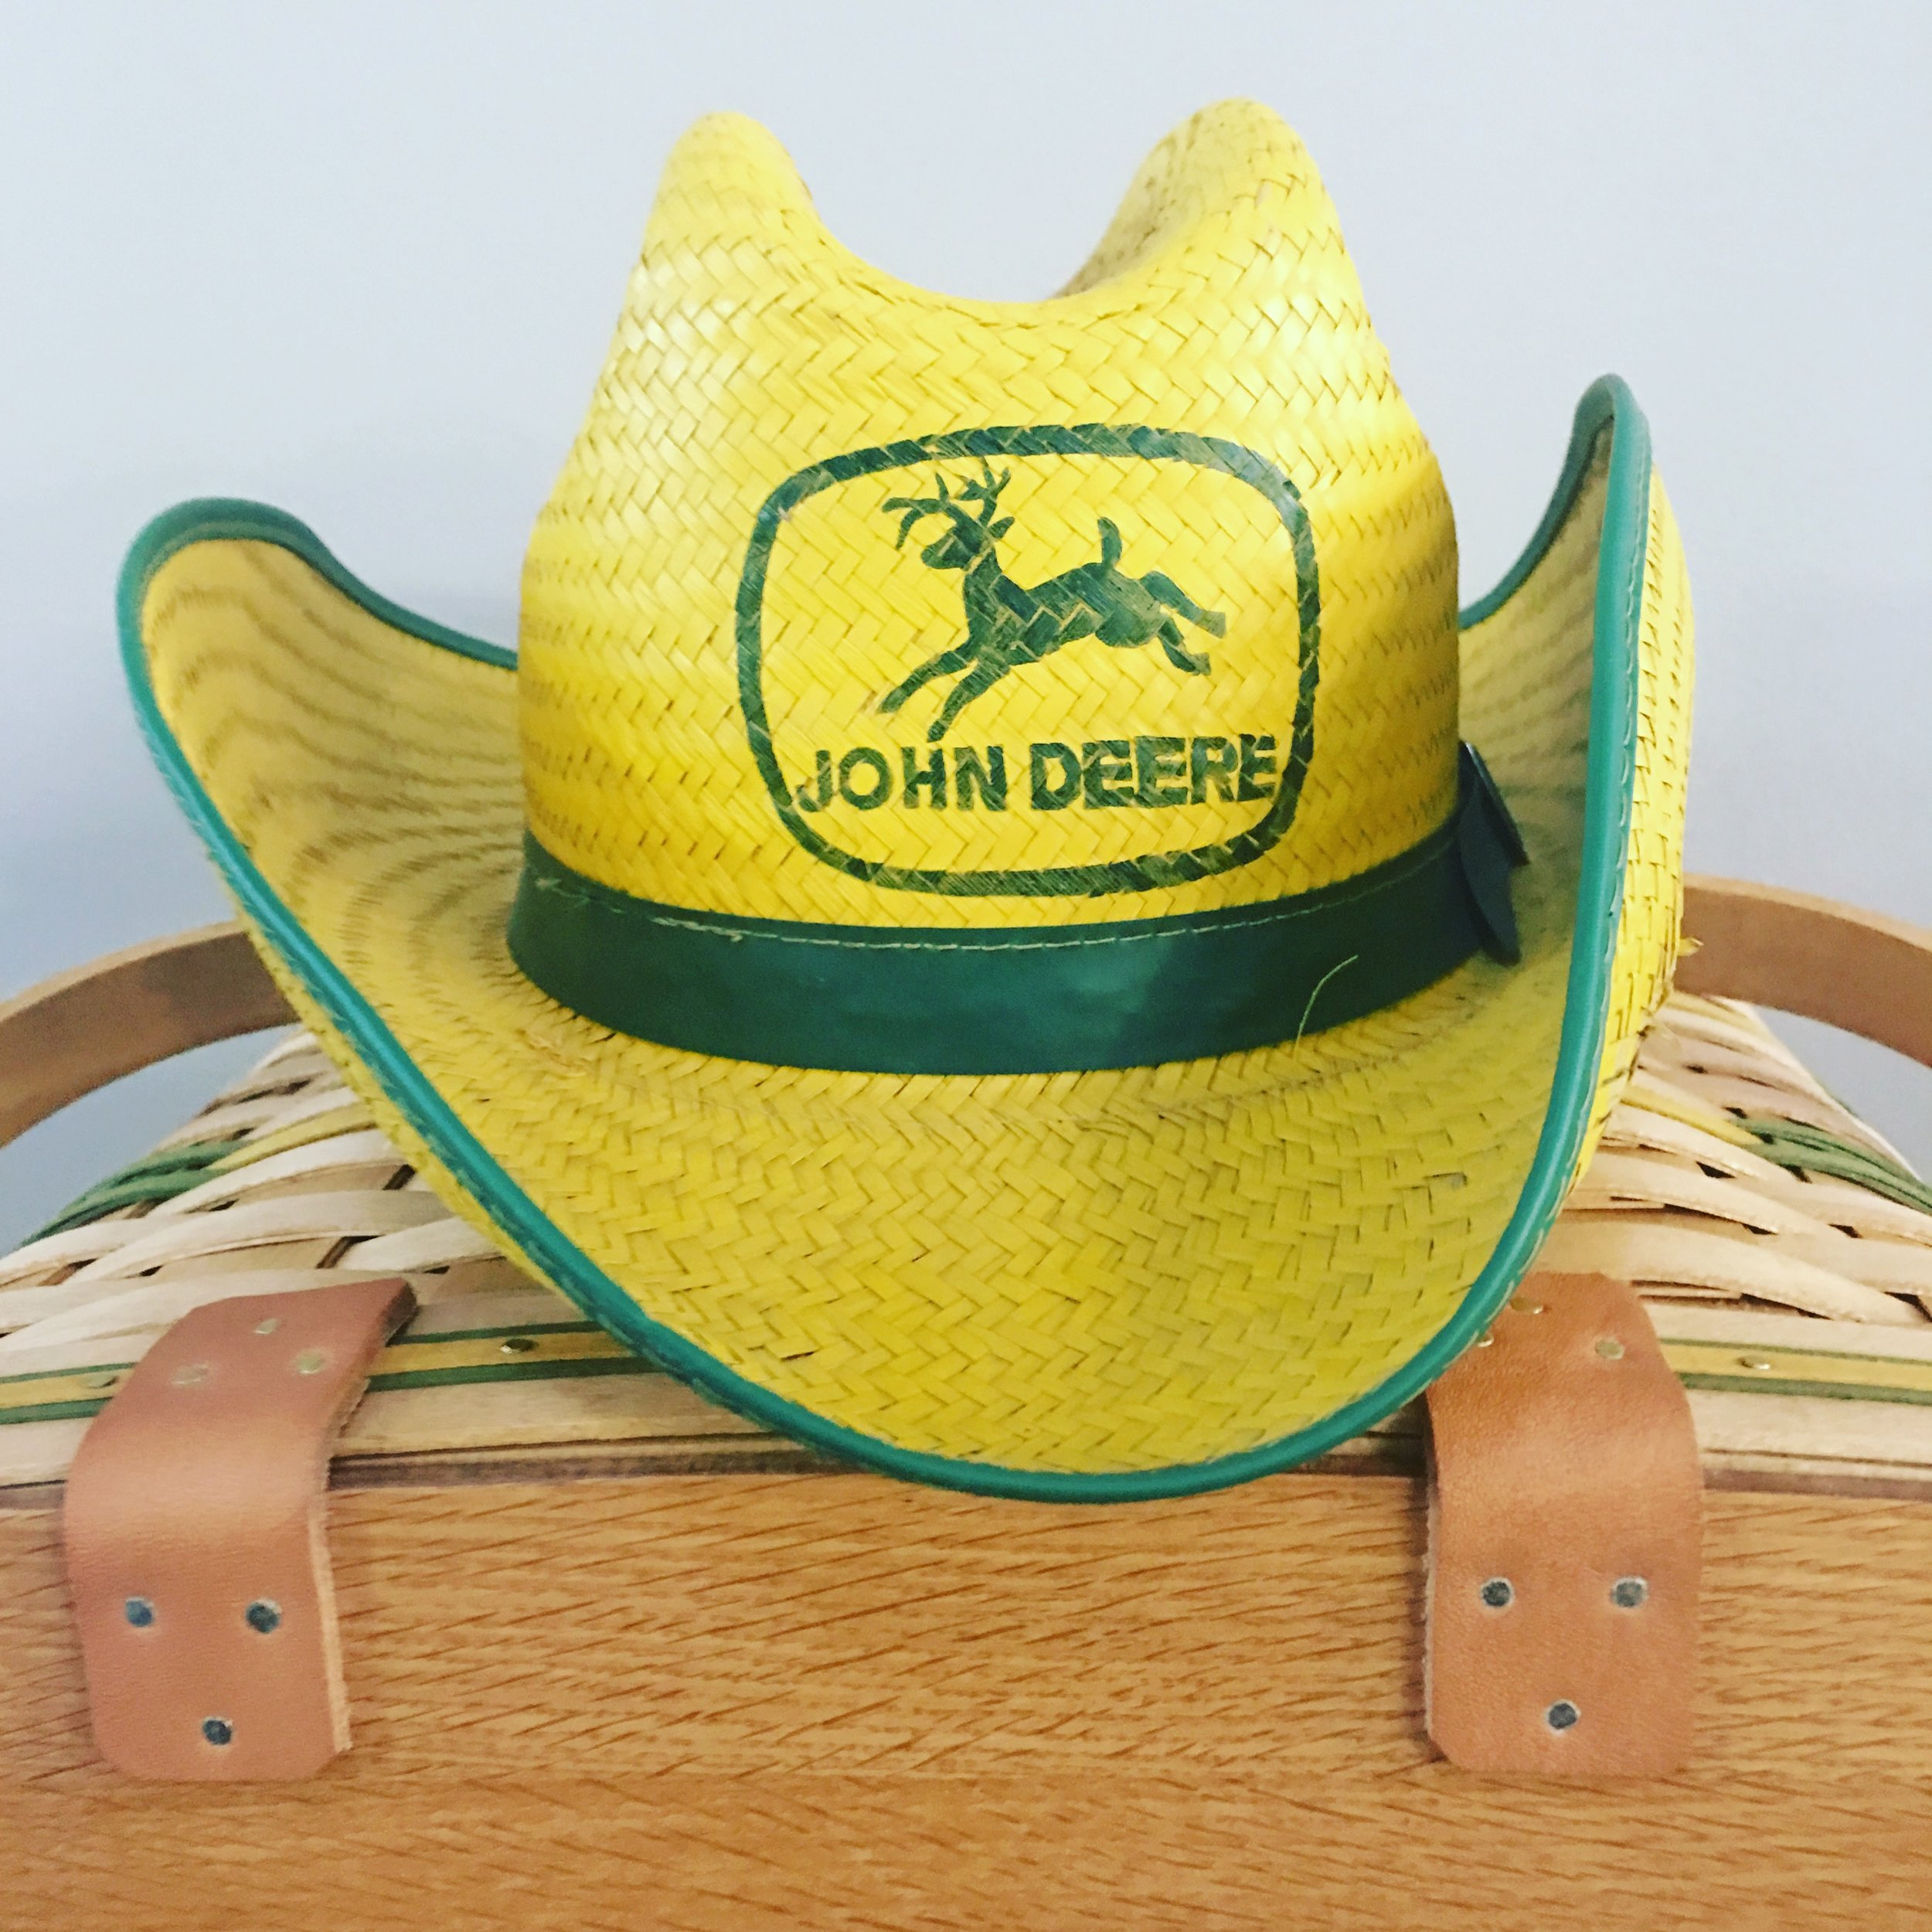 The winter farm toy auctions also have great memorabilia like this original John Deere straw hat.